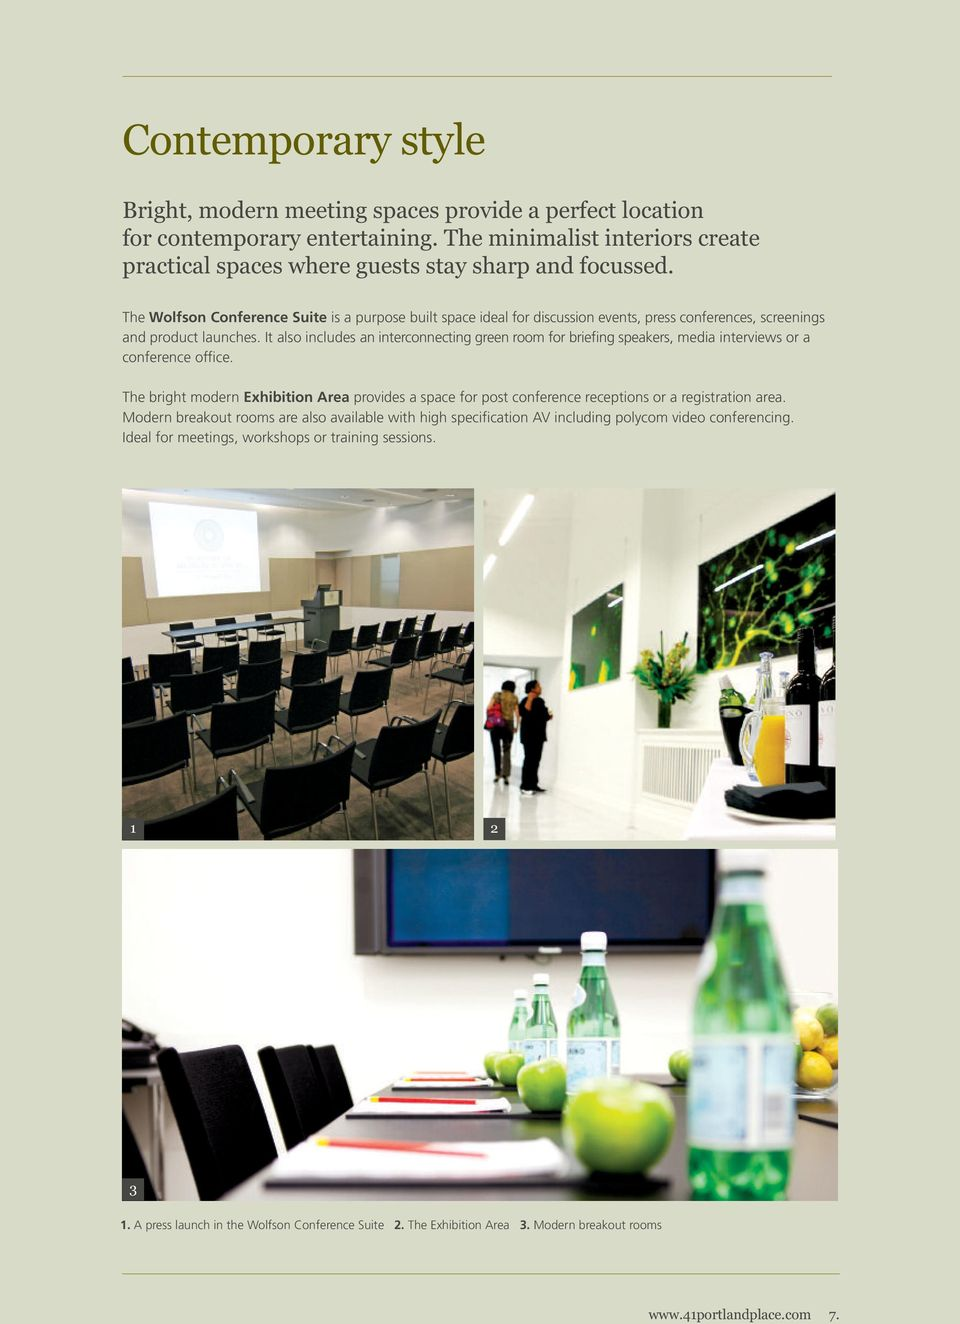 It also includes an interconnecting green room for briefing speakers, media interviews or a conference office.